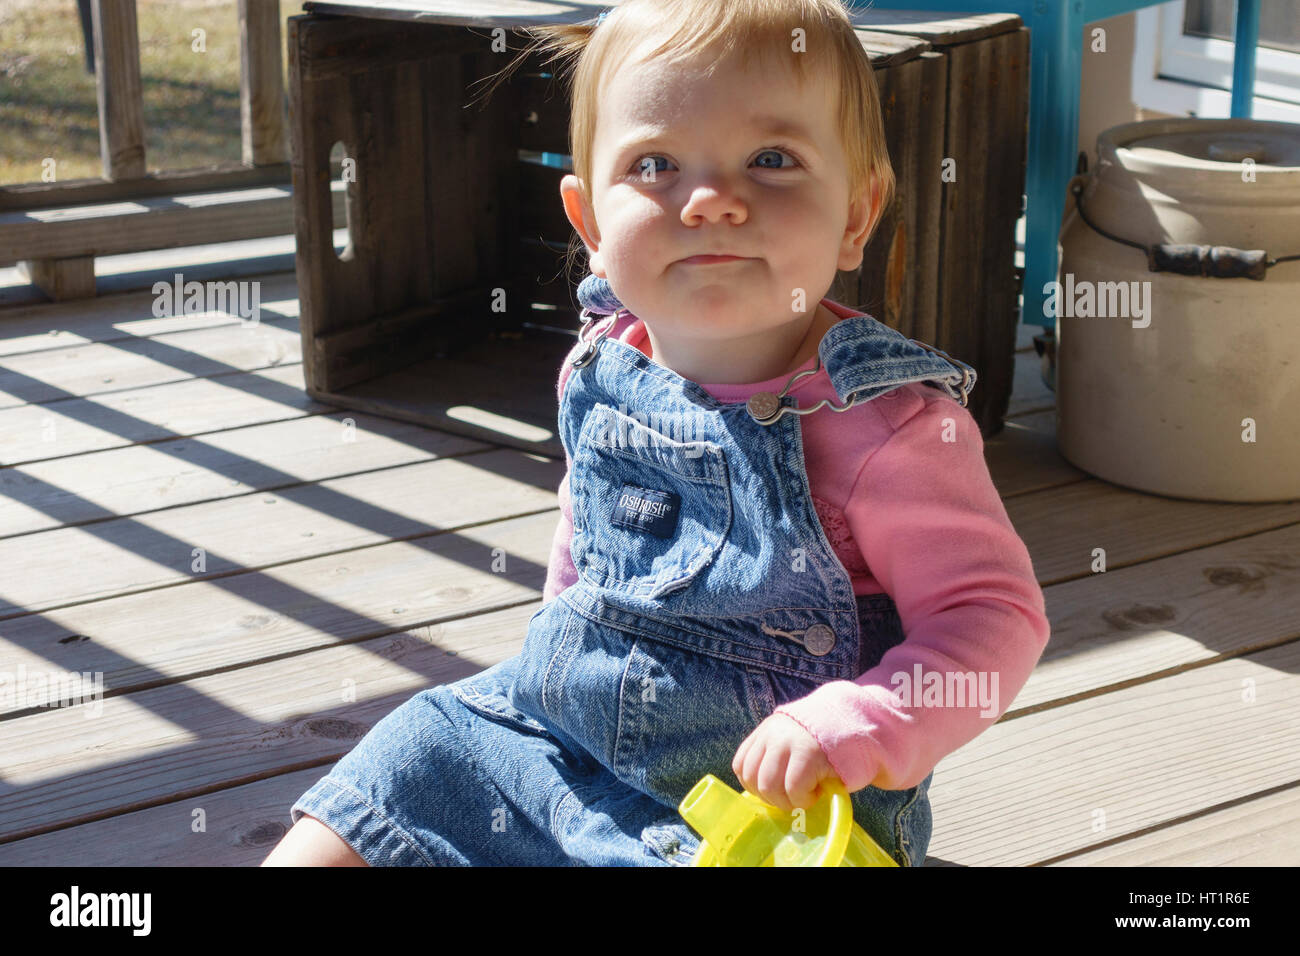 One year old smiling Caucasian baby girl in overalls sitting on an outdoor deck with a drink cup. Kansas, USA. - Stock Image